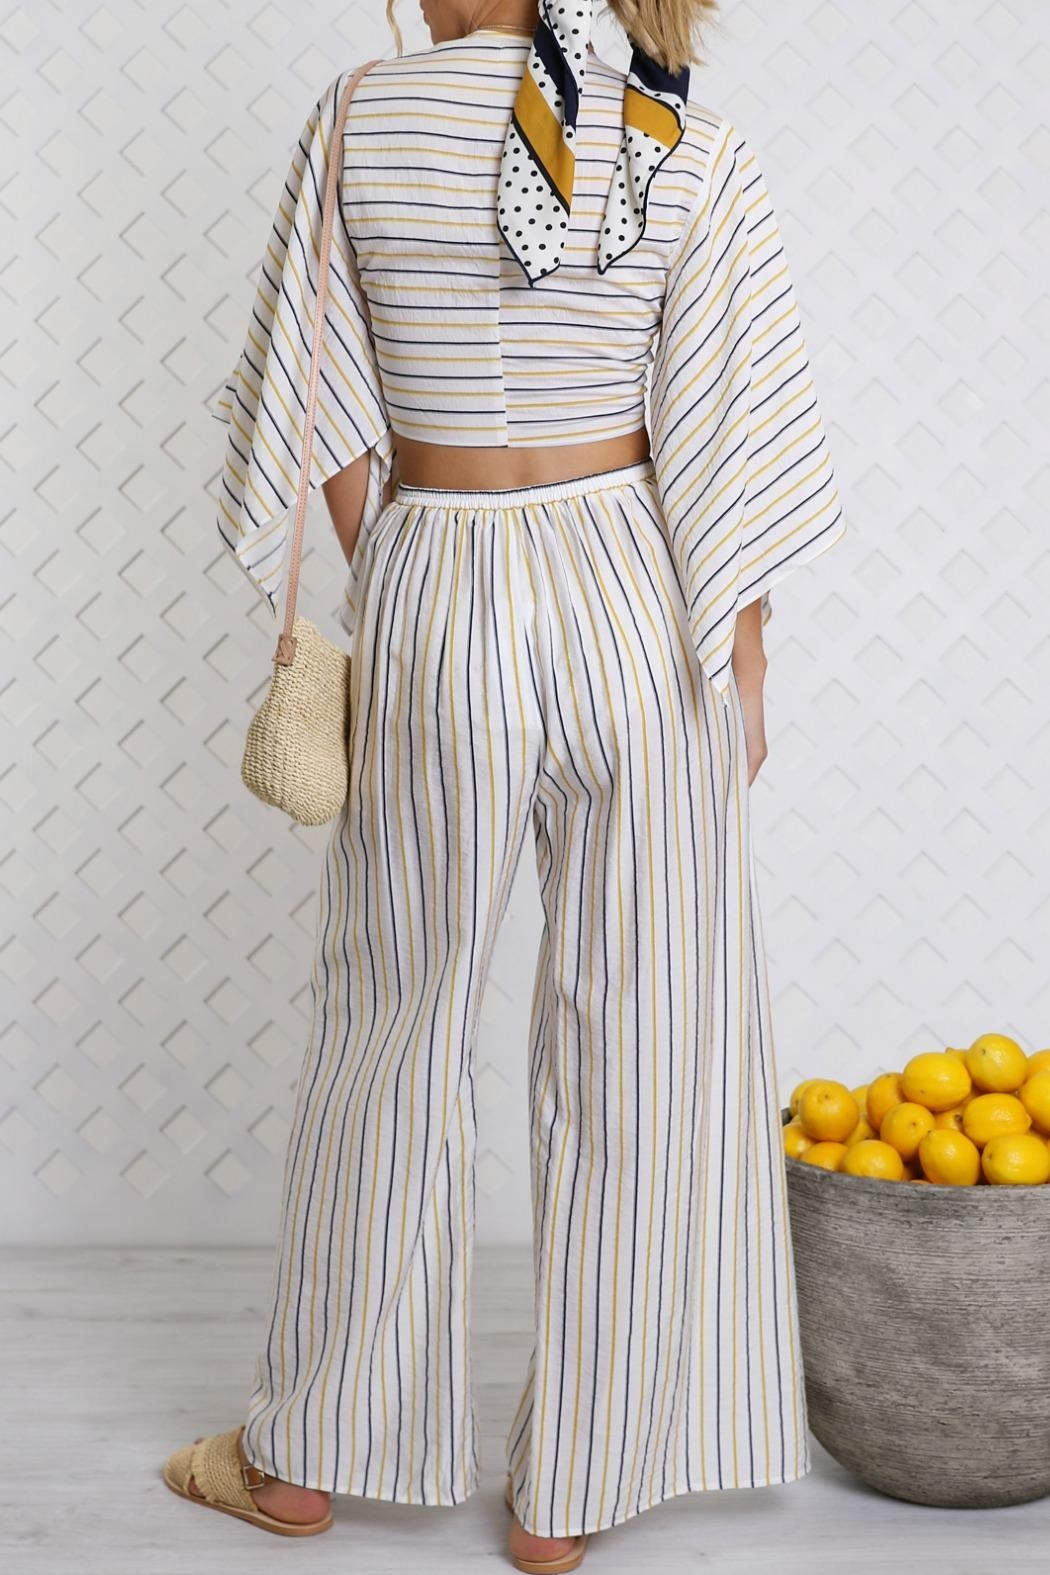 Lost in Lunar Cosette Wrap Top - Side Cropped Image